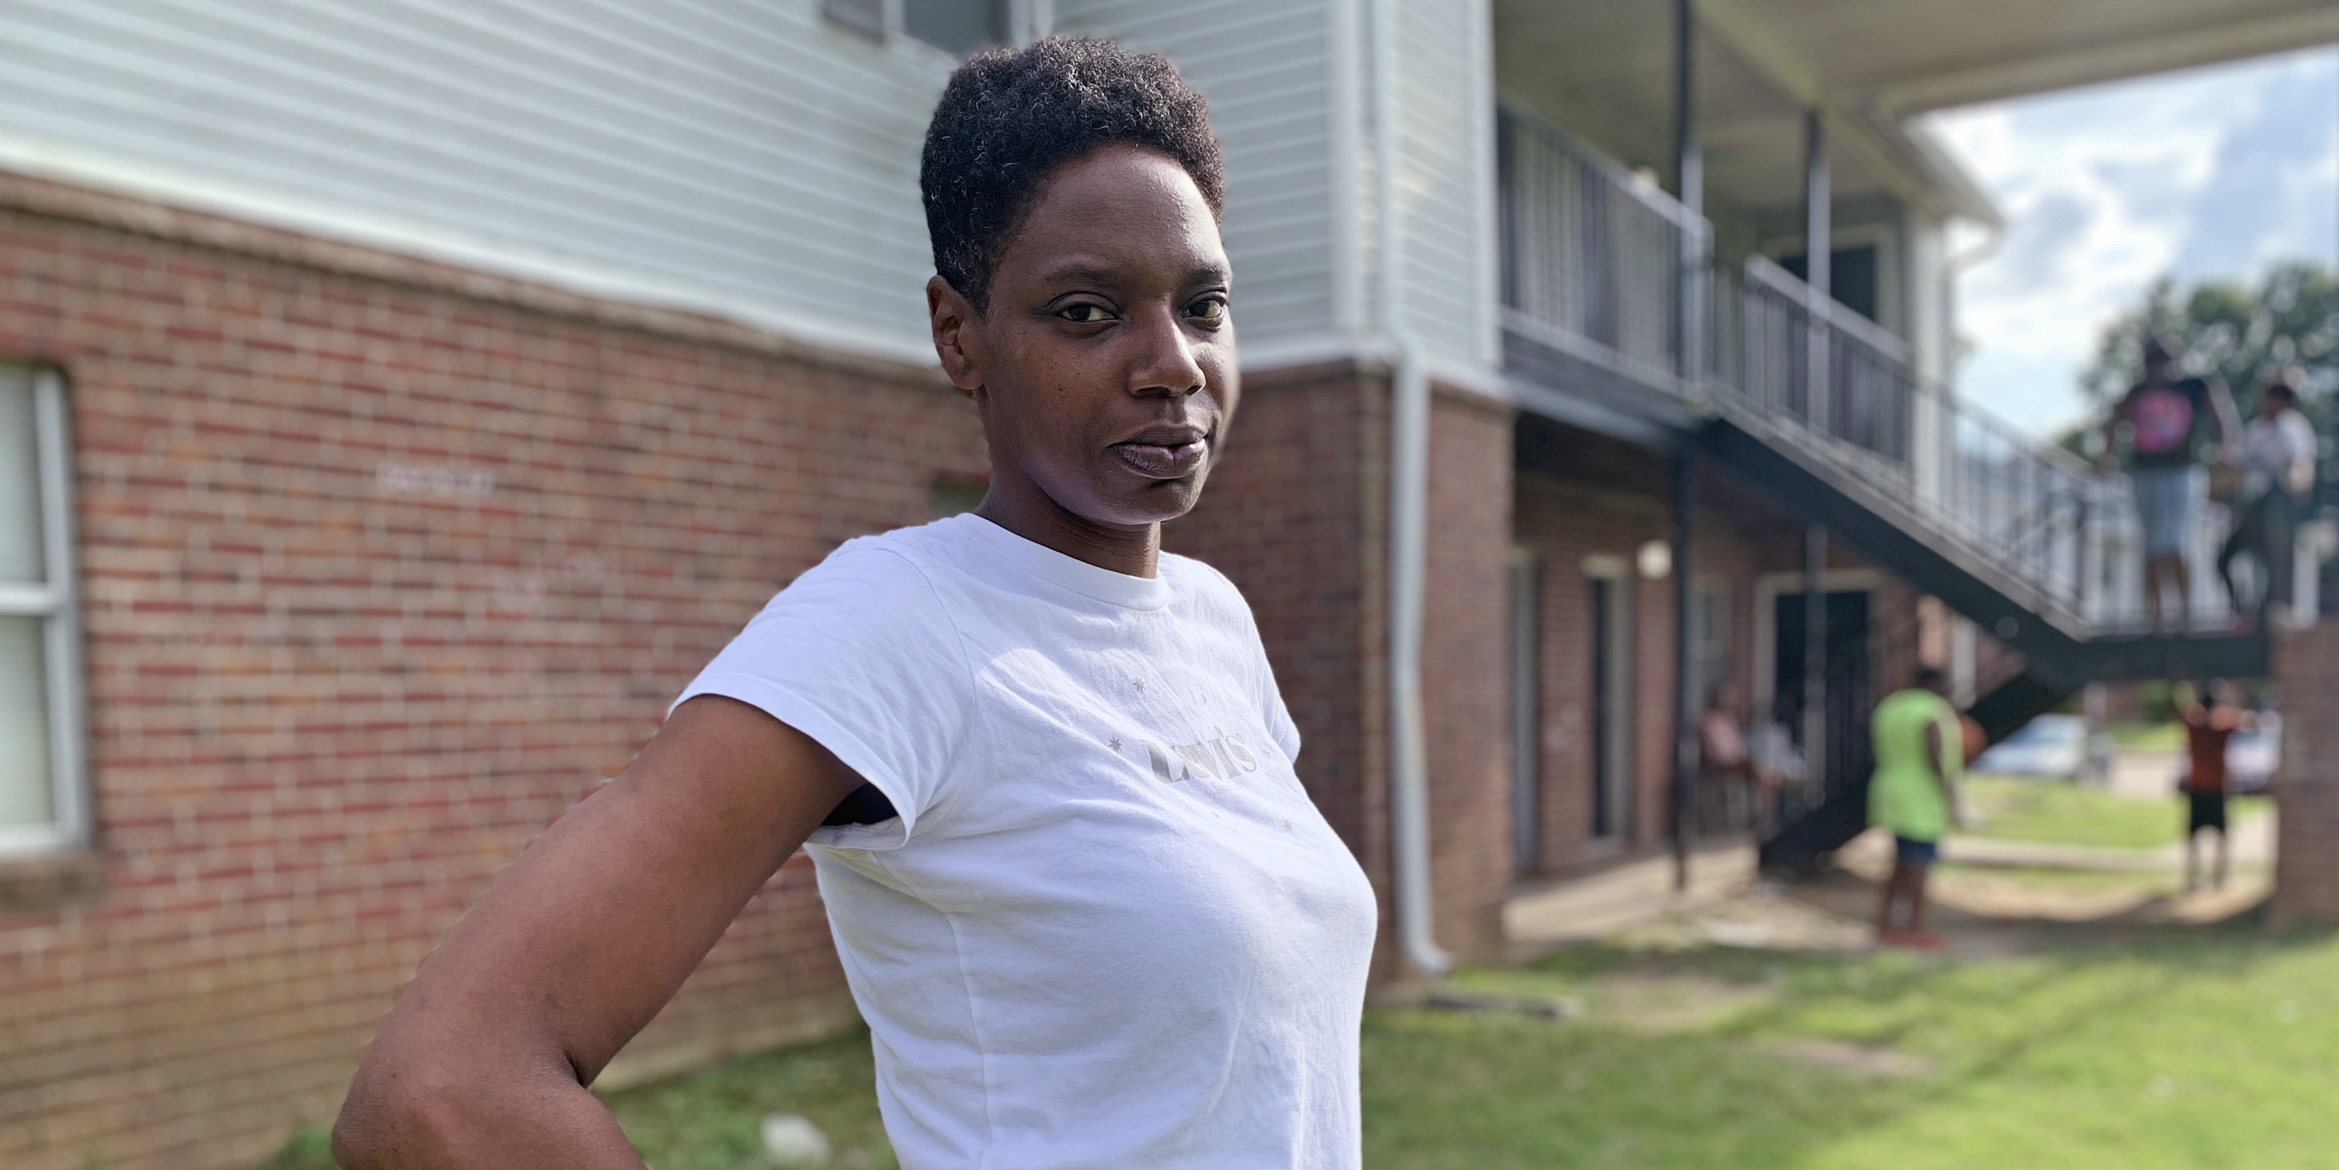 As many prepare for eviction, states struggle to allocate $25 billion in rental assistance